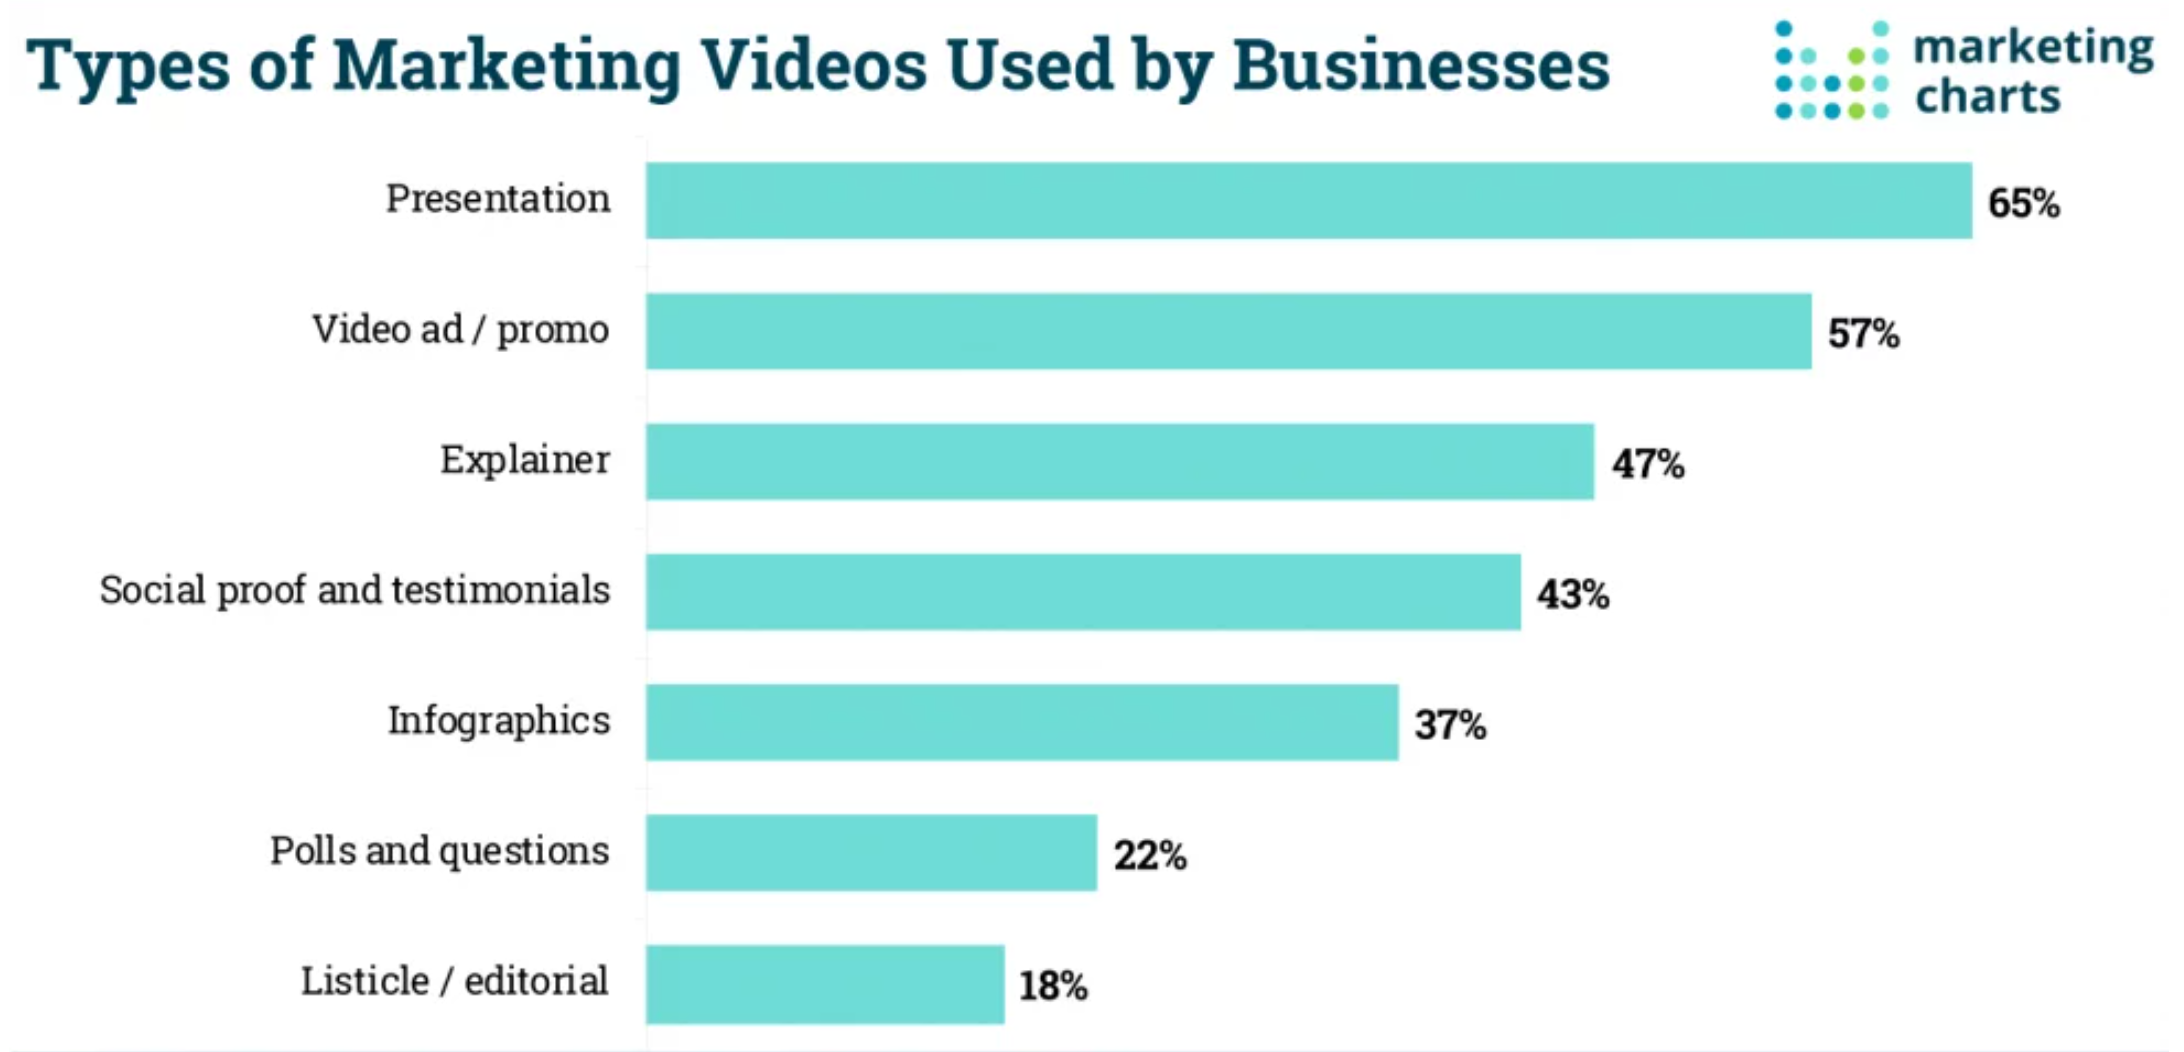 Types of Marketing Videos Used by Businesses